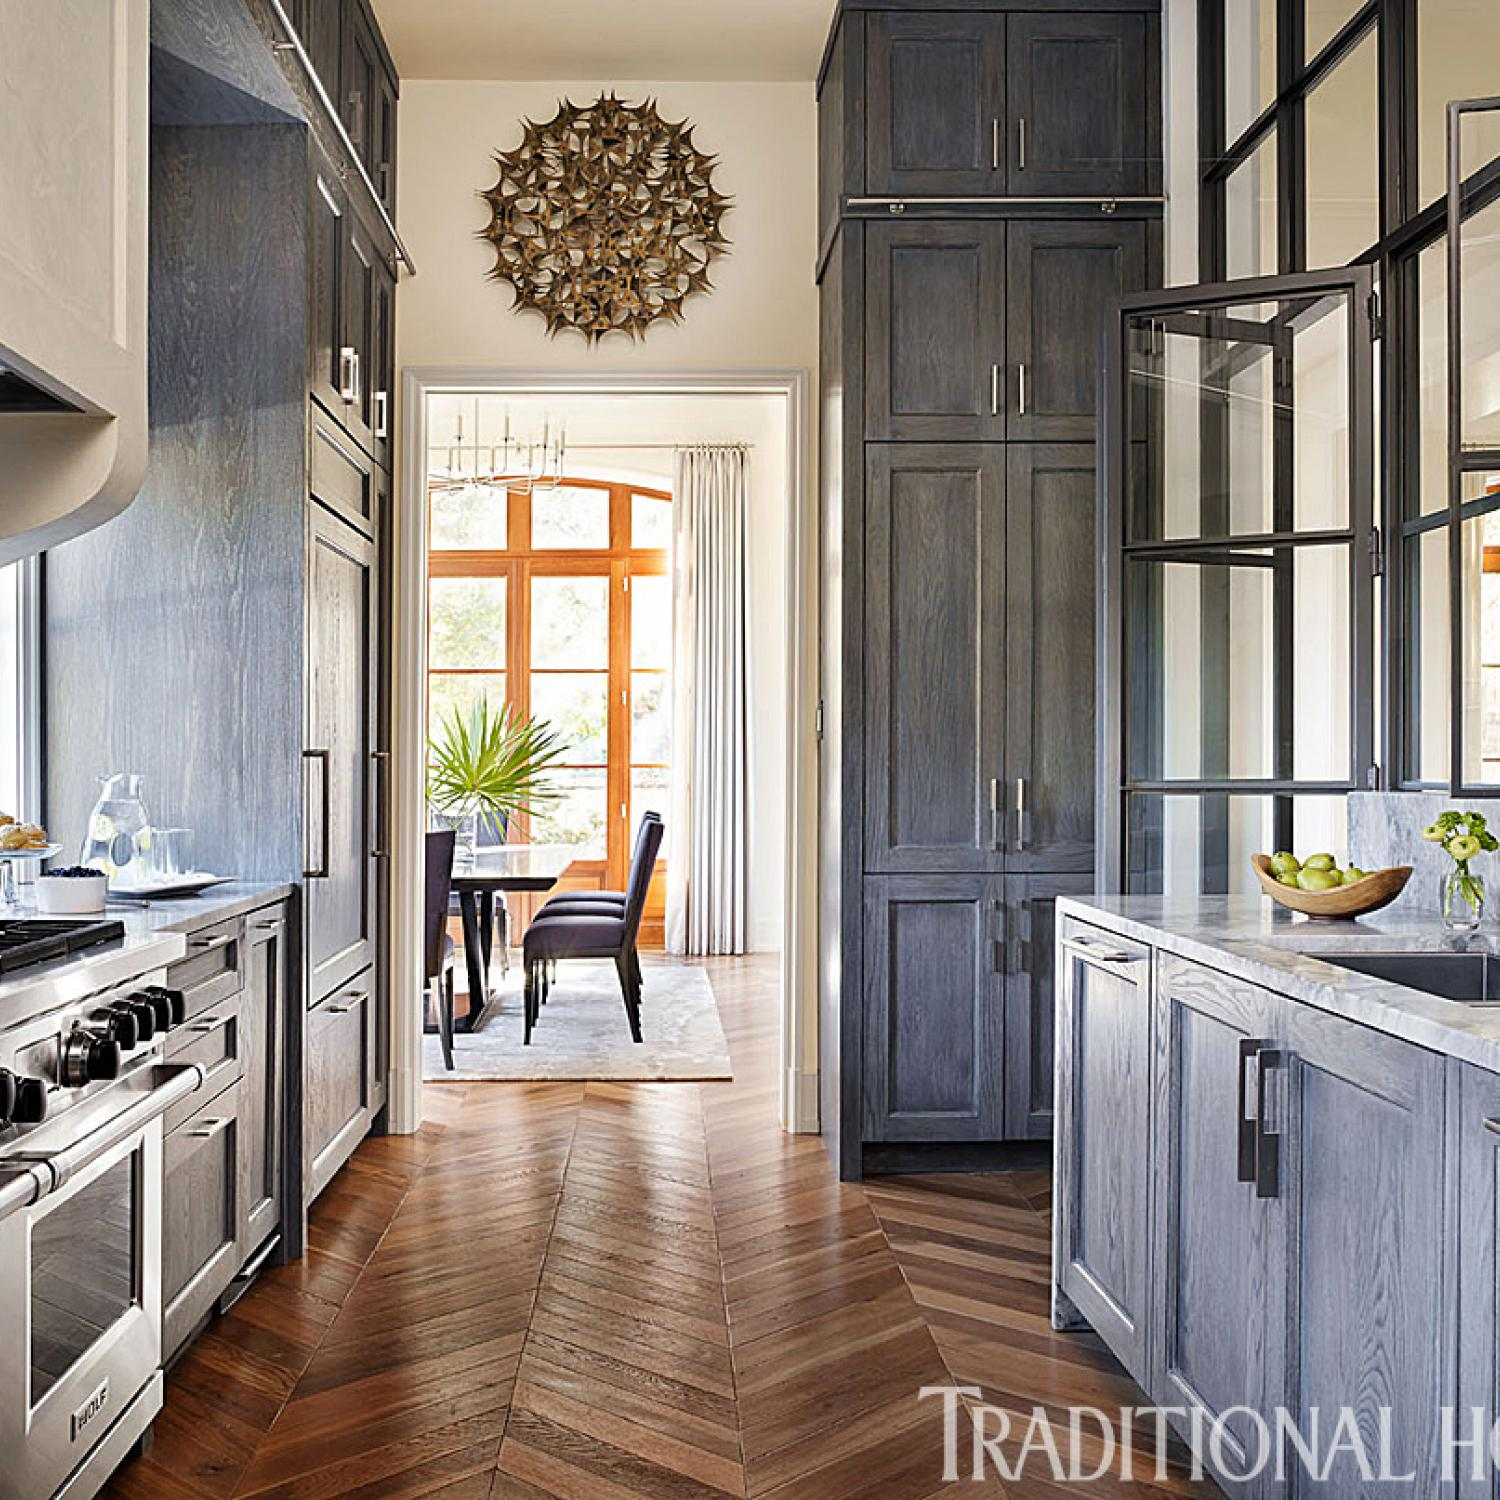 Smart kitchen dressed in stylish neutrals traditional home for Building traditional kitchen cabinets by jim tolpin